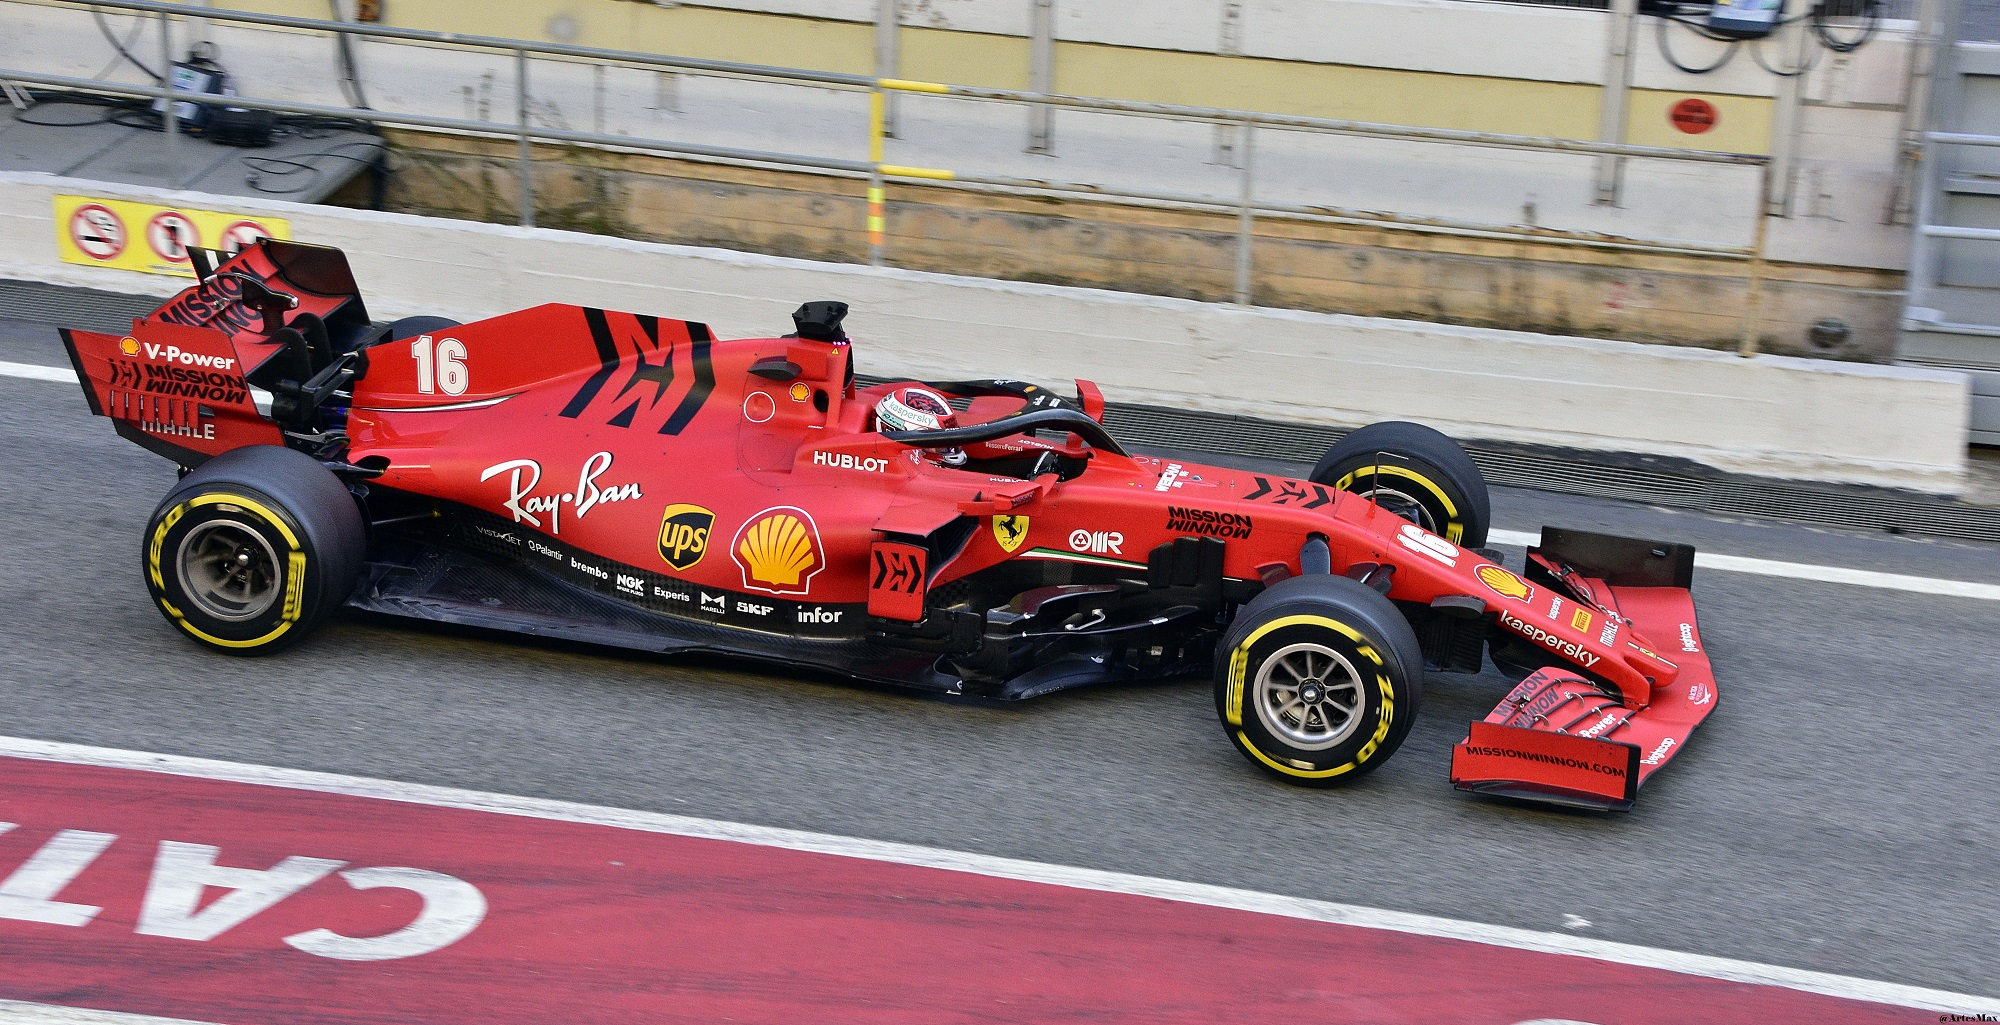 Ferrari Second Team To Test Its 2020 Car Ahead Of F1 Season Starter At Austria The Sportsrush